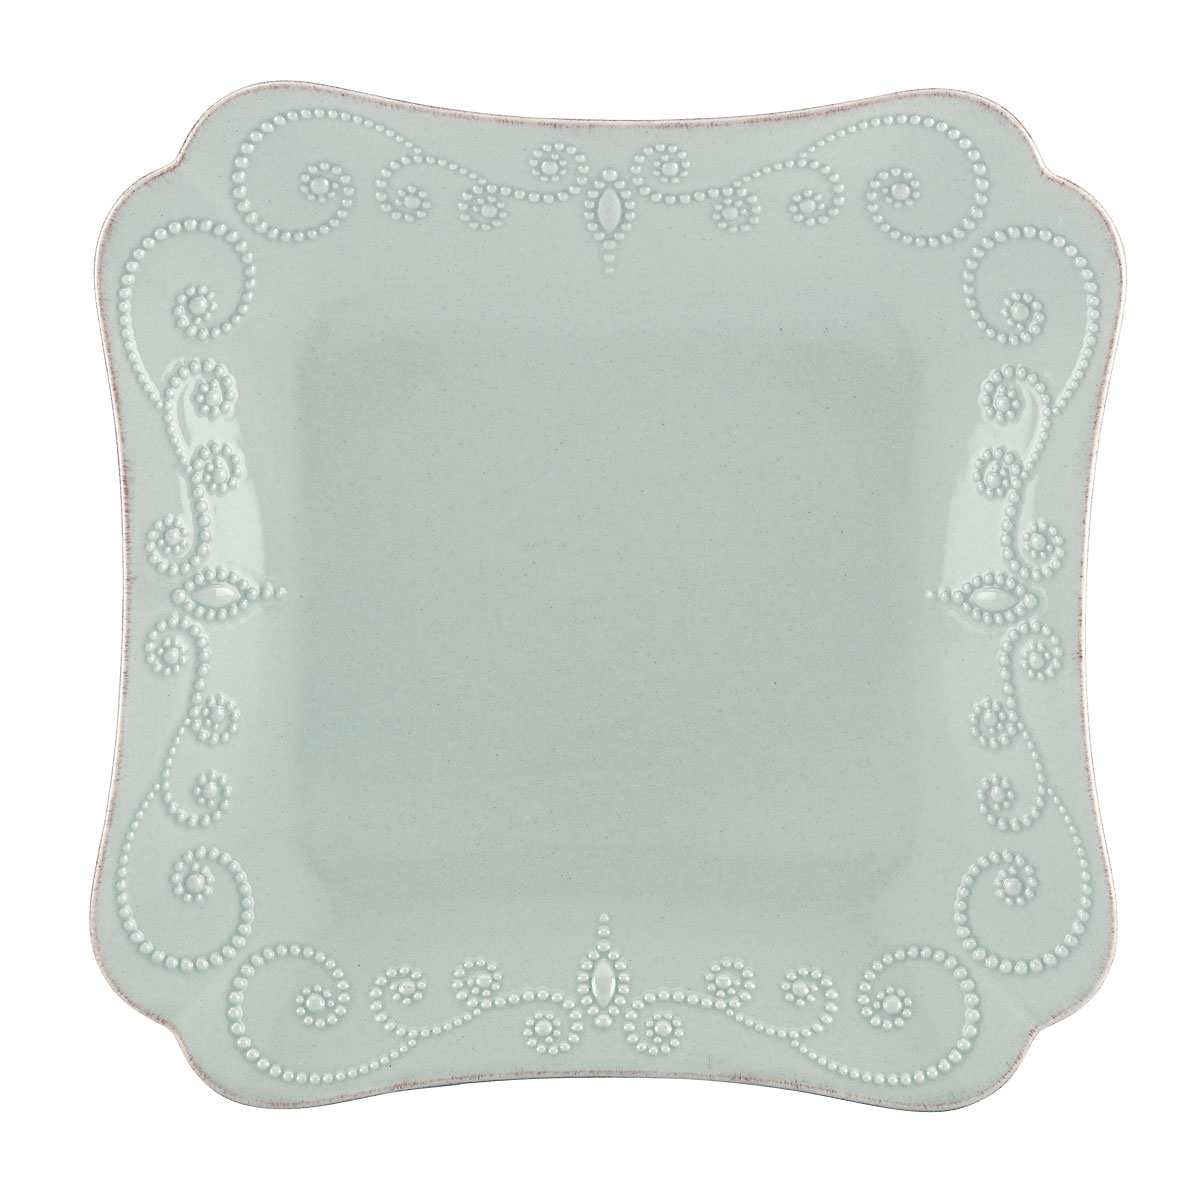 Lenox French Perle Blue Dinnerware Square Dinner Plate